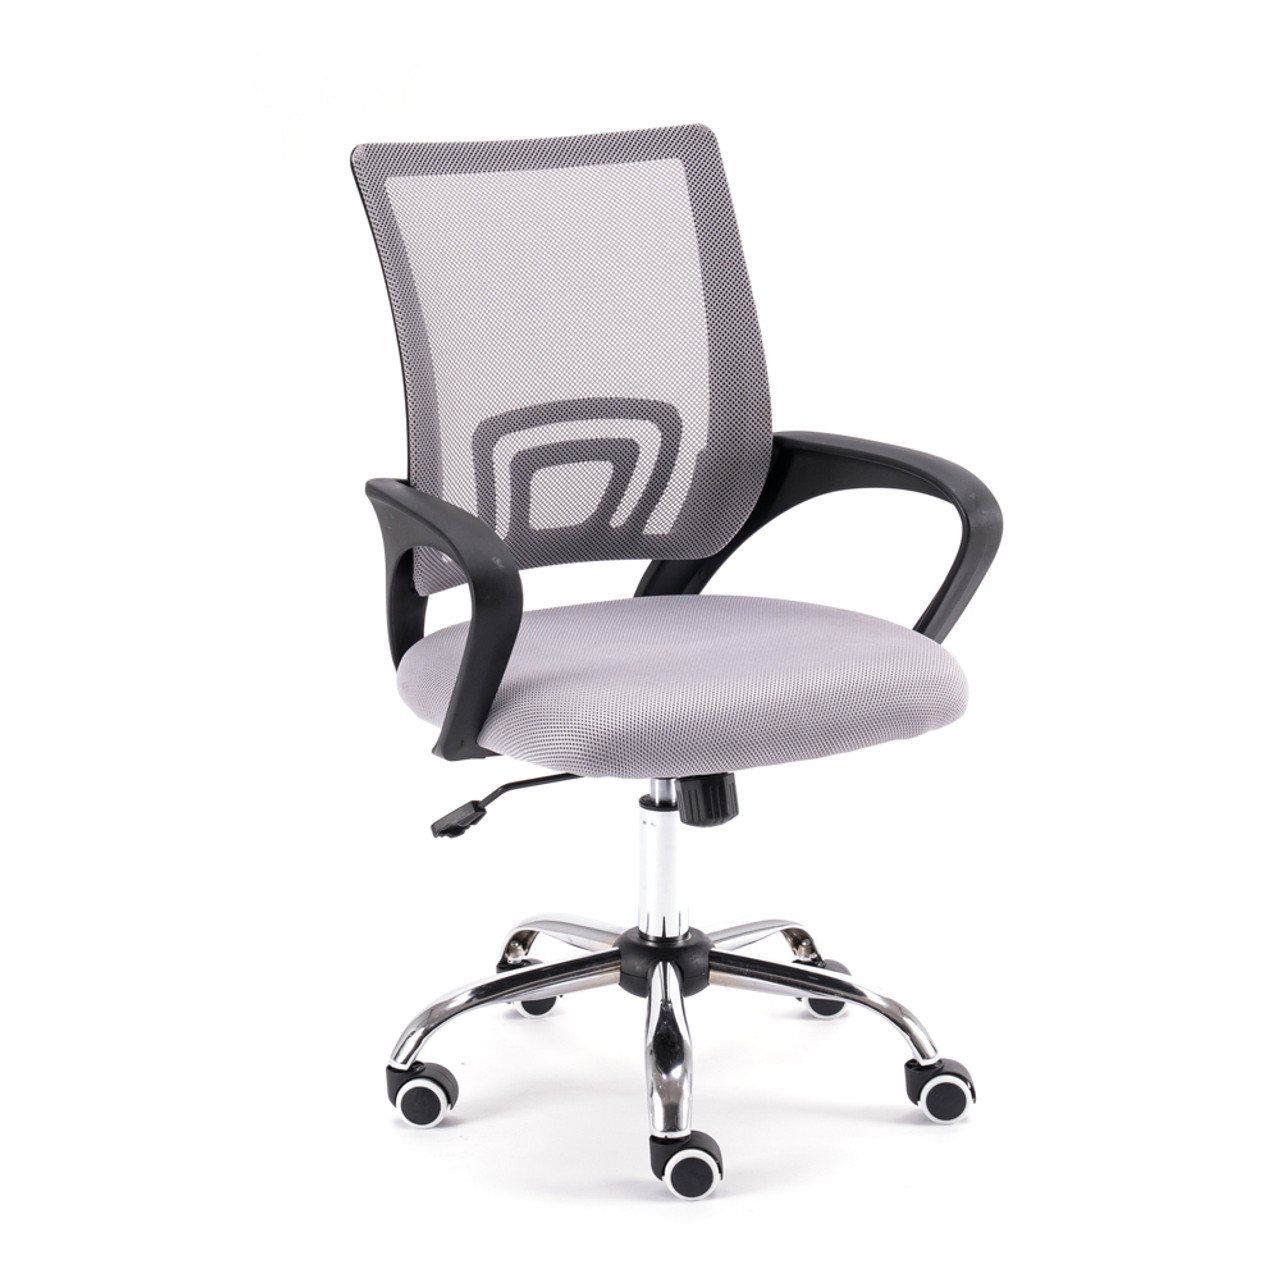 Mesh Back Adjustable Swivel Office Chair! .99 (REG 4.99) + Free Shipping at Until Gone!